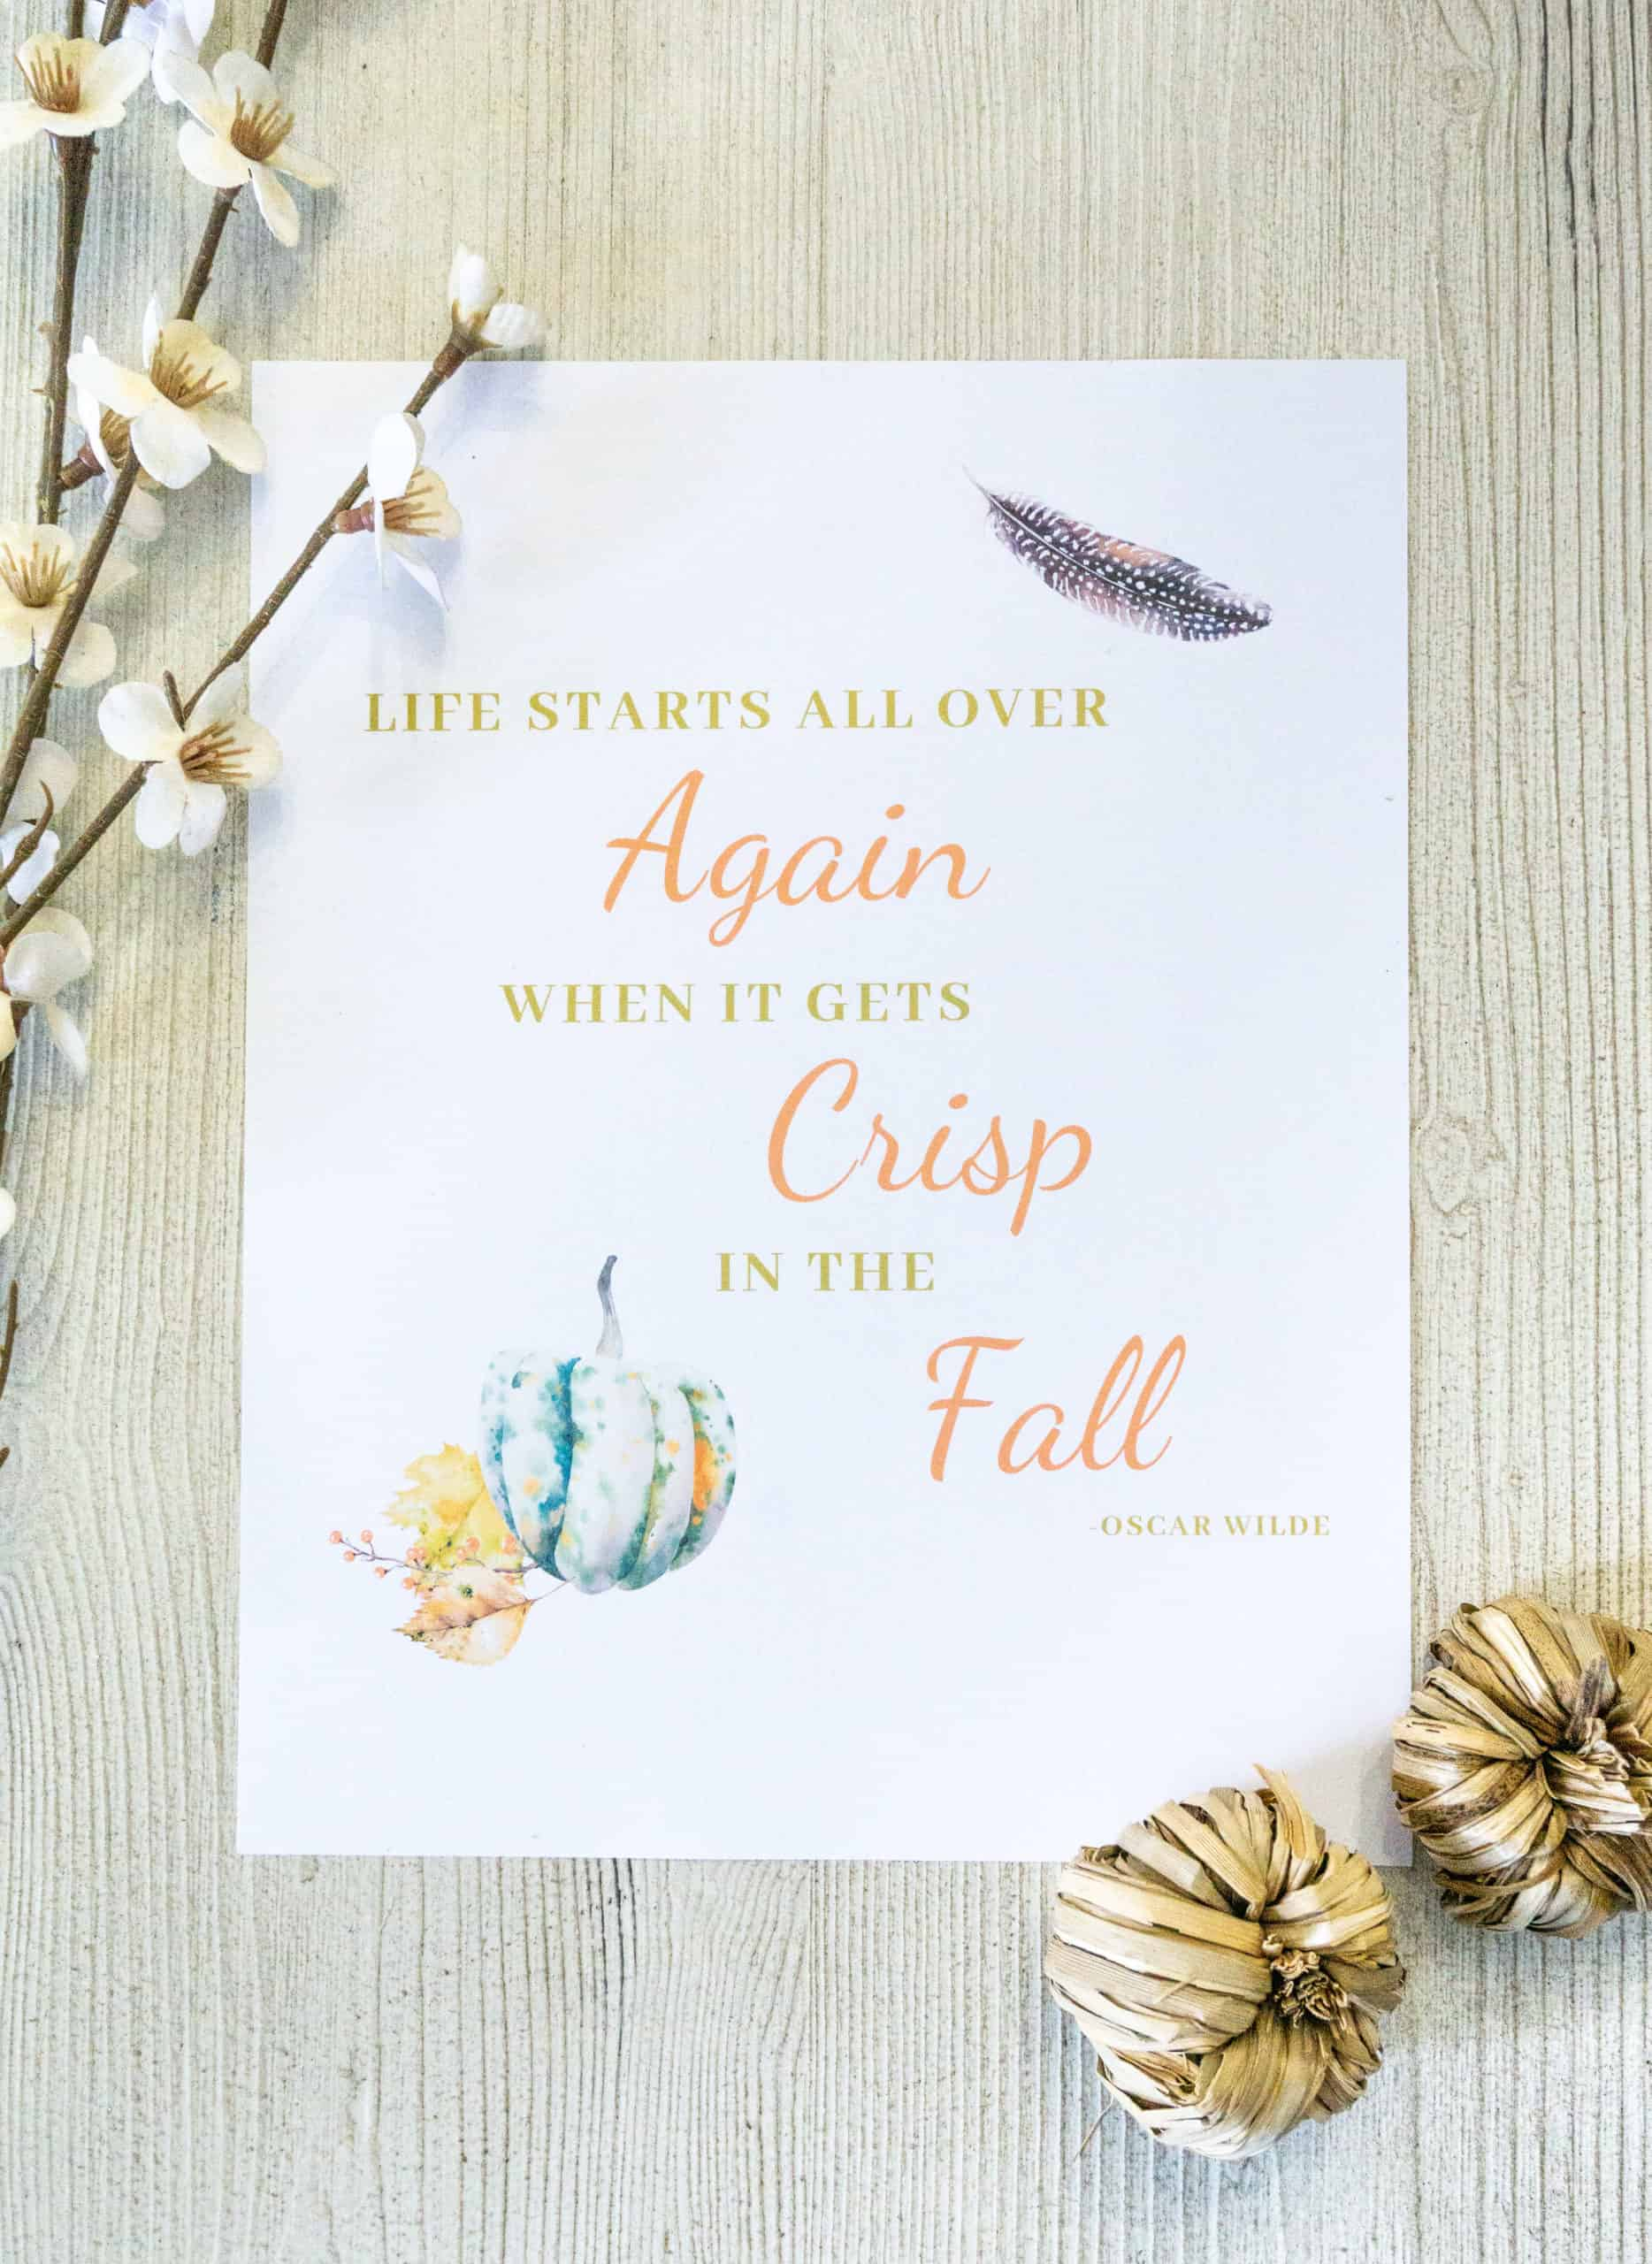 This fall printable set makes decorating for fall a snap.  Printables are an easy, and inexpensive, way to add a seasonal touch to your decor.